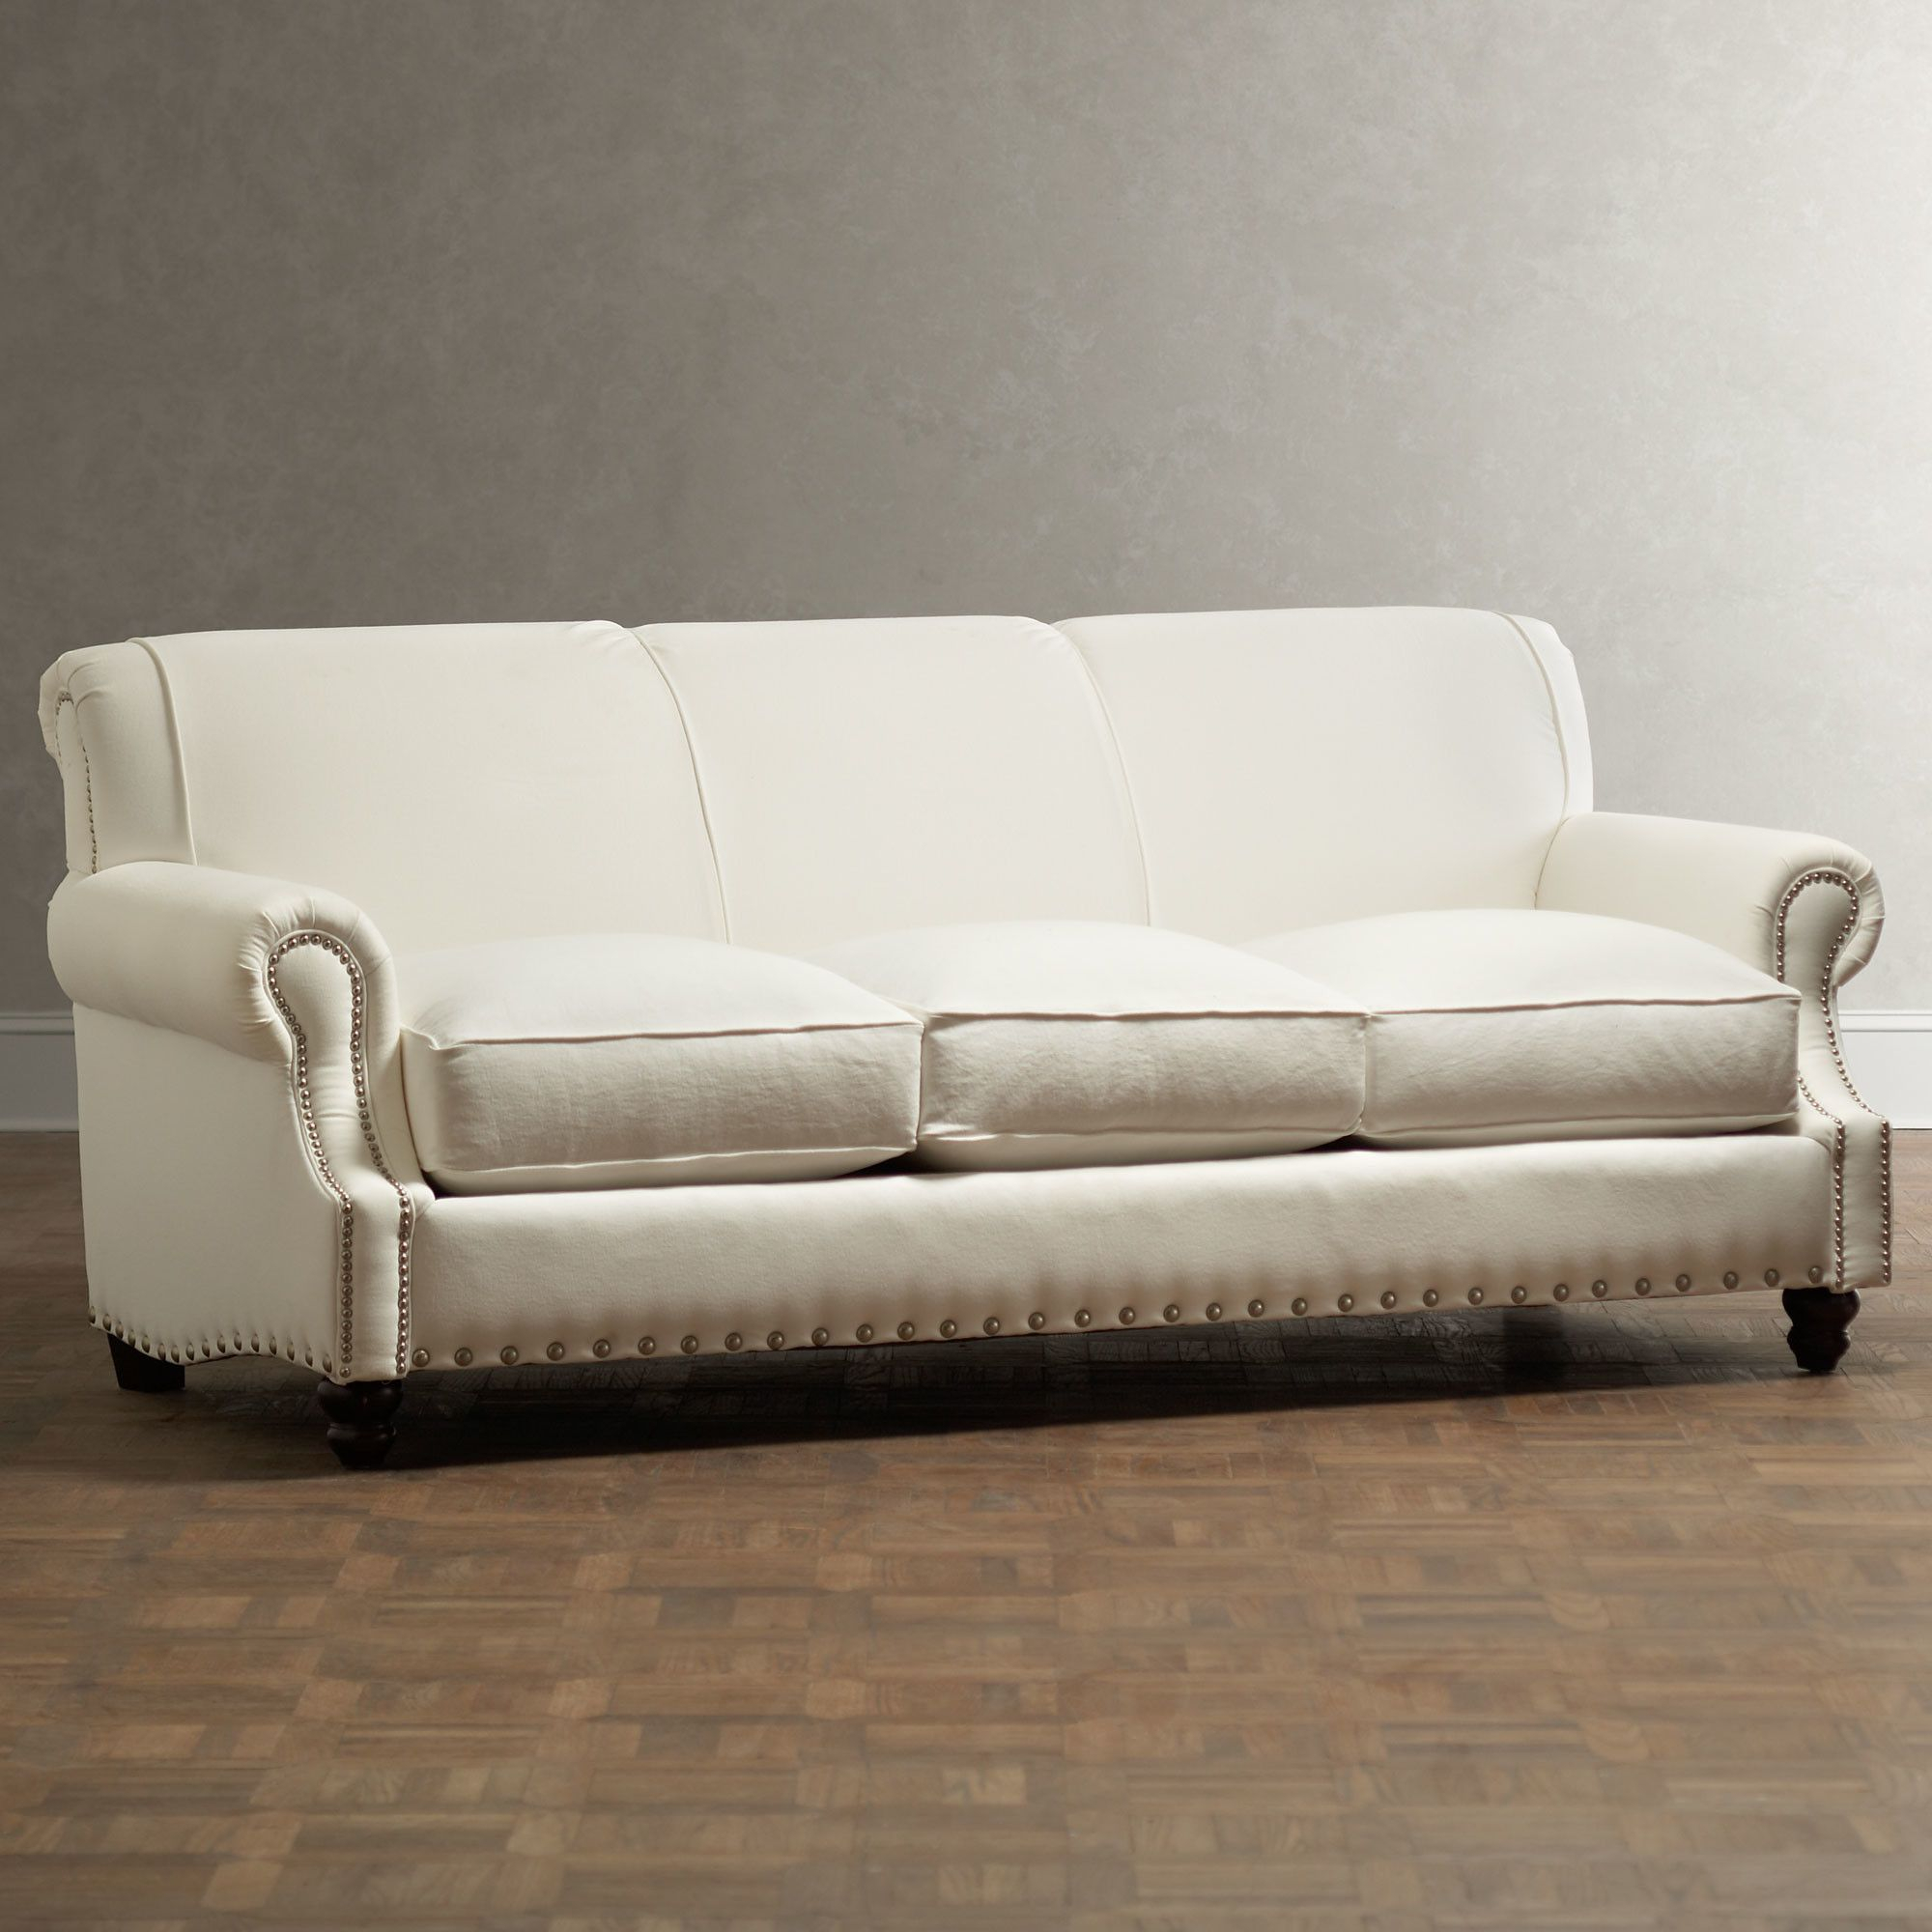 Landry Sofa | Birch Lane, Birch And Living Rooms With Landry Sofa Chairs (Image 14 of 20)